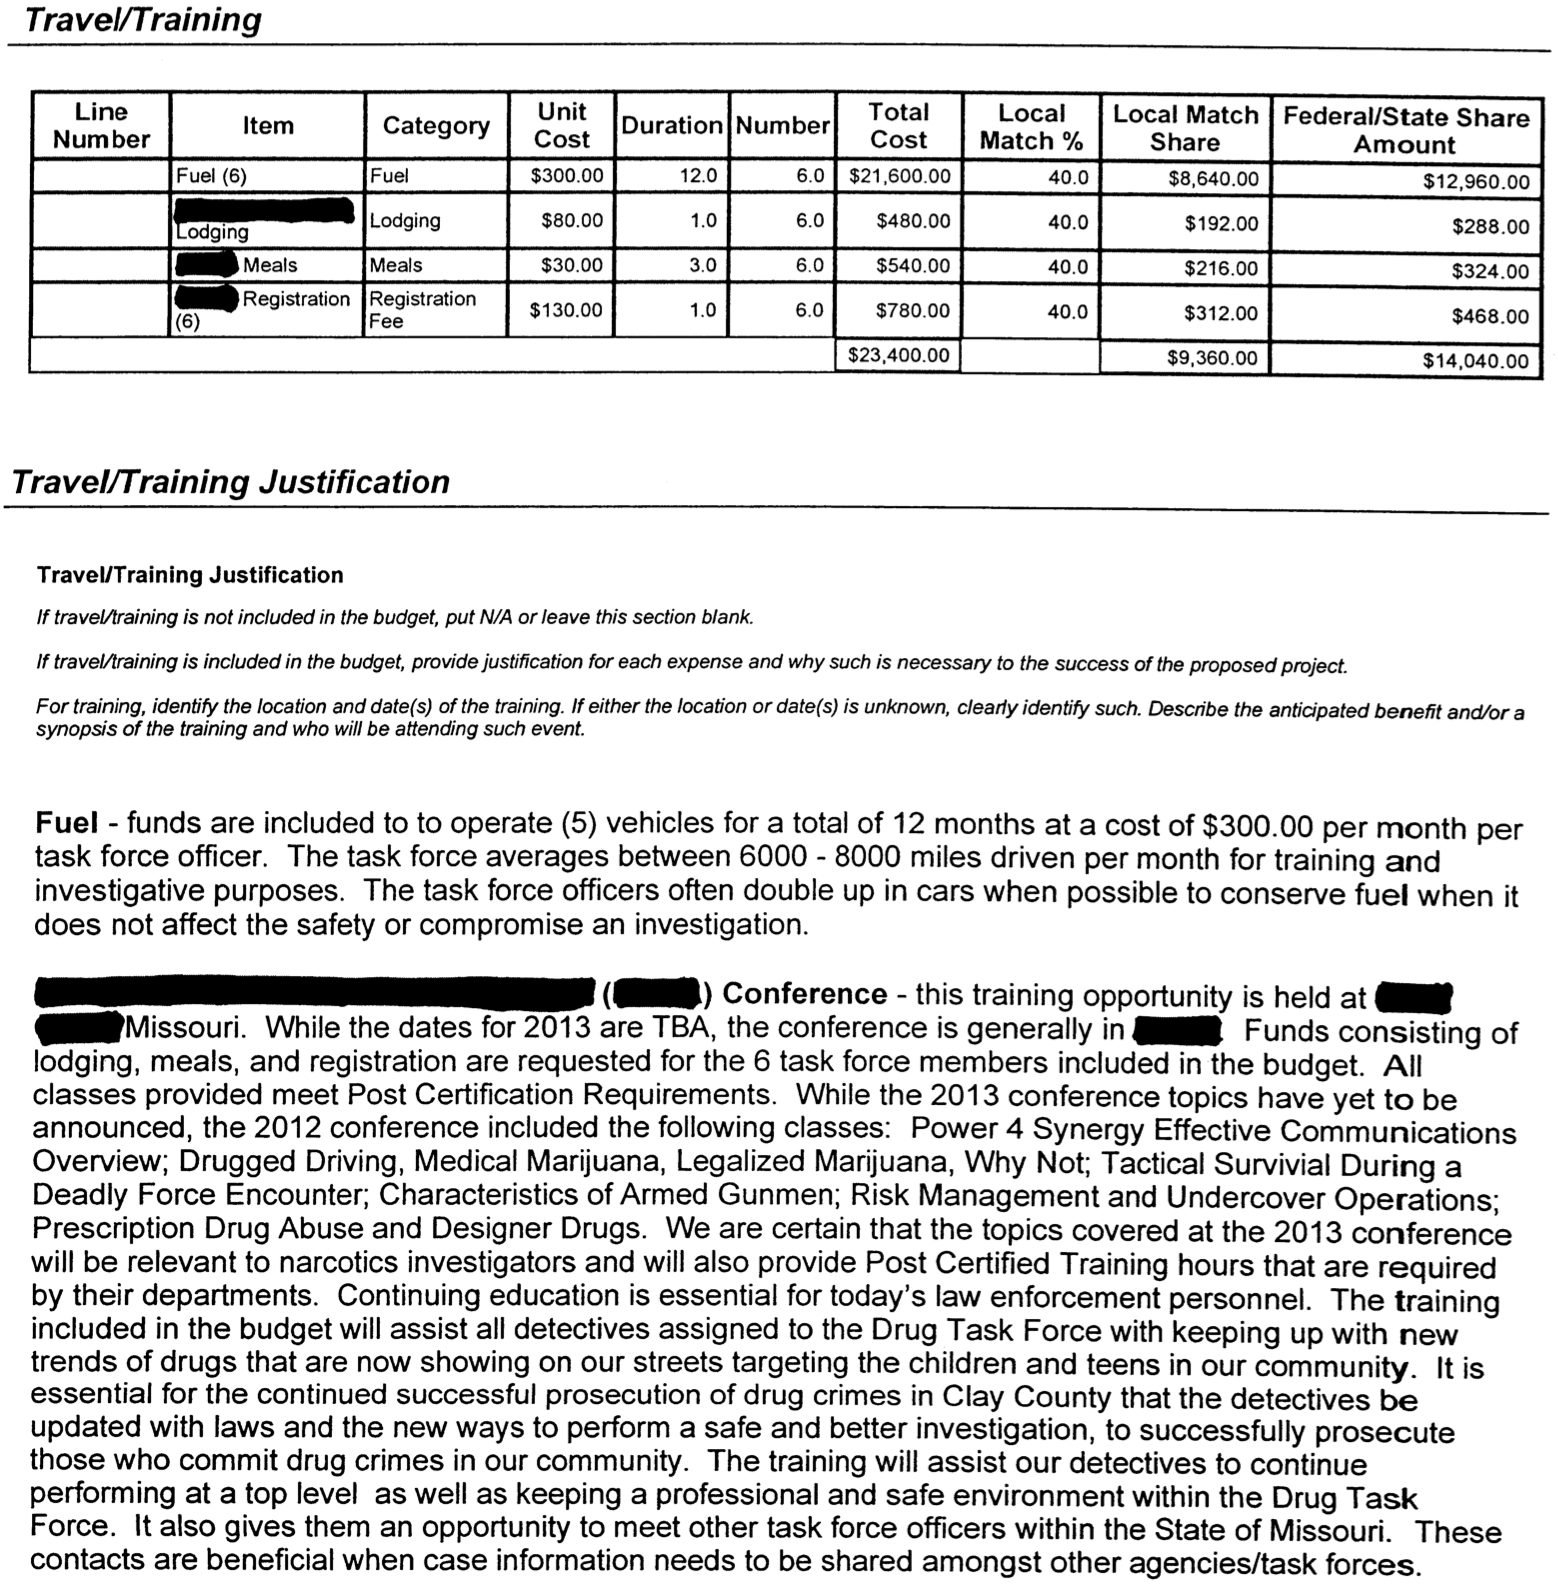 2012 Grant Details Report from Clay County Drug Task Force. Obtained via Sunshine Law Request.